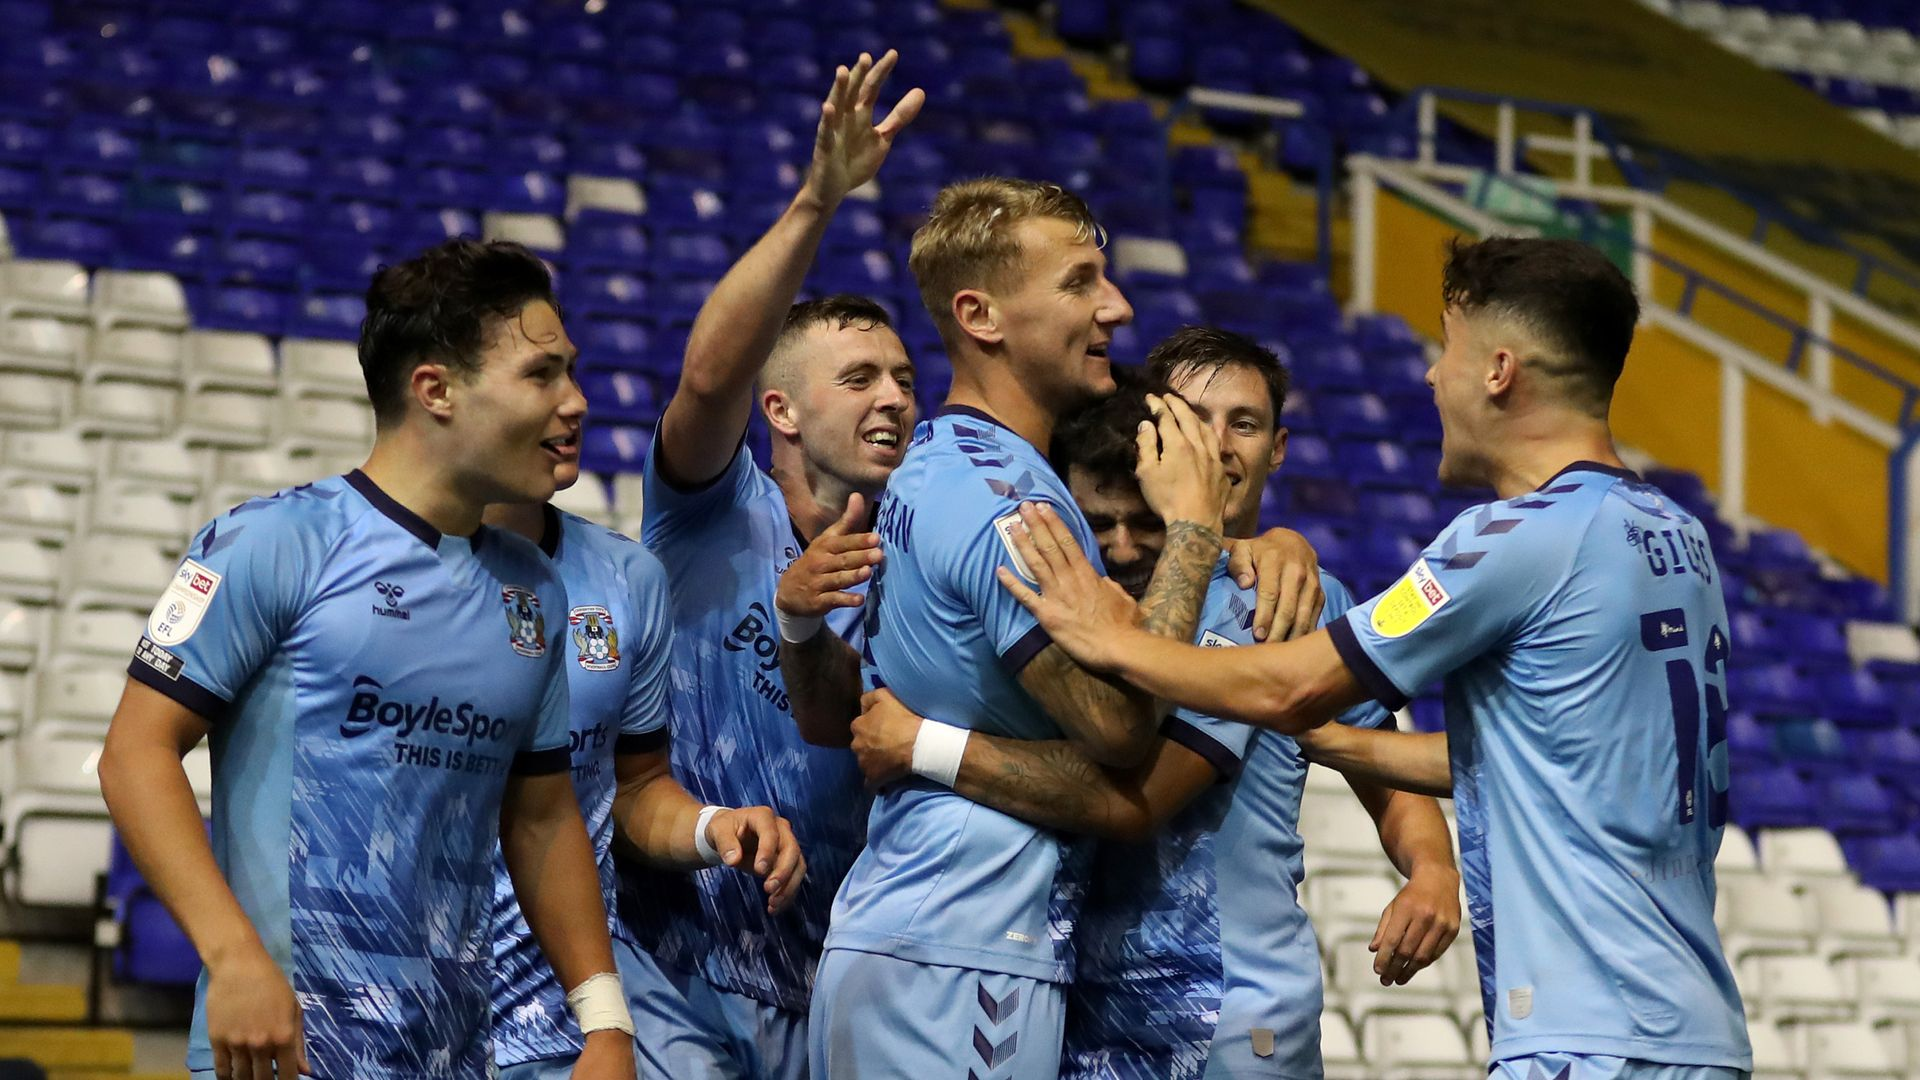 Coventry beat QPR in five-goal thriller - sky sports